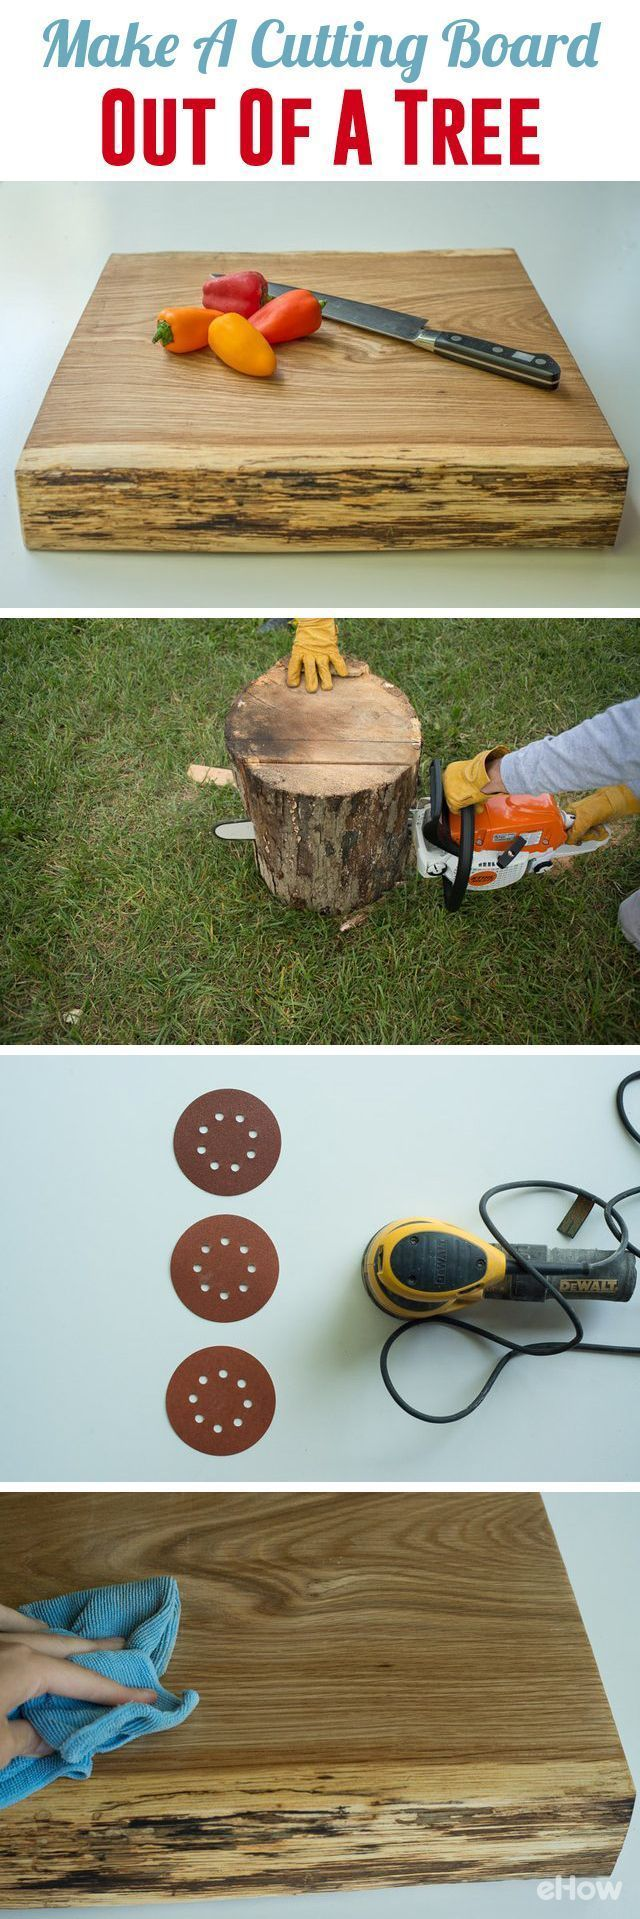 DIY Woodworking Ideas How to Make a Cutting Board Out of a Tree